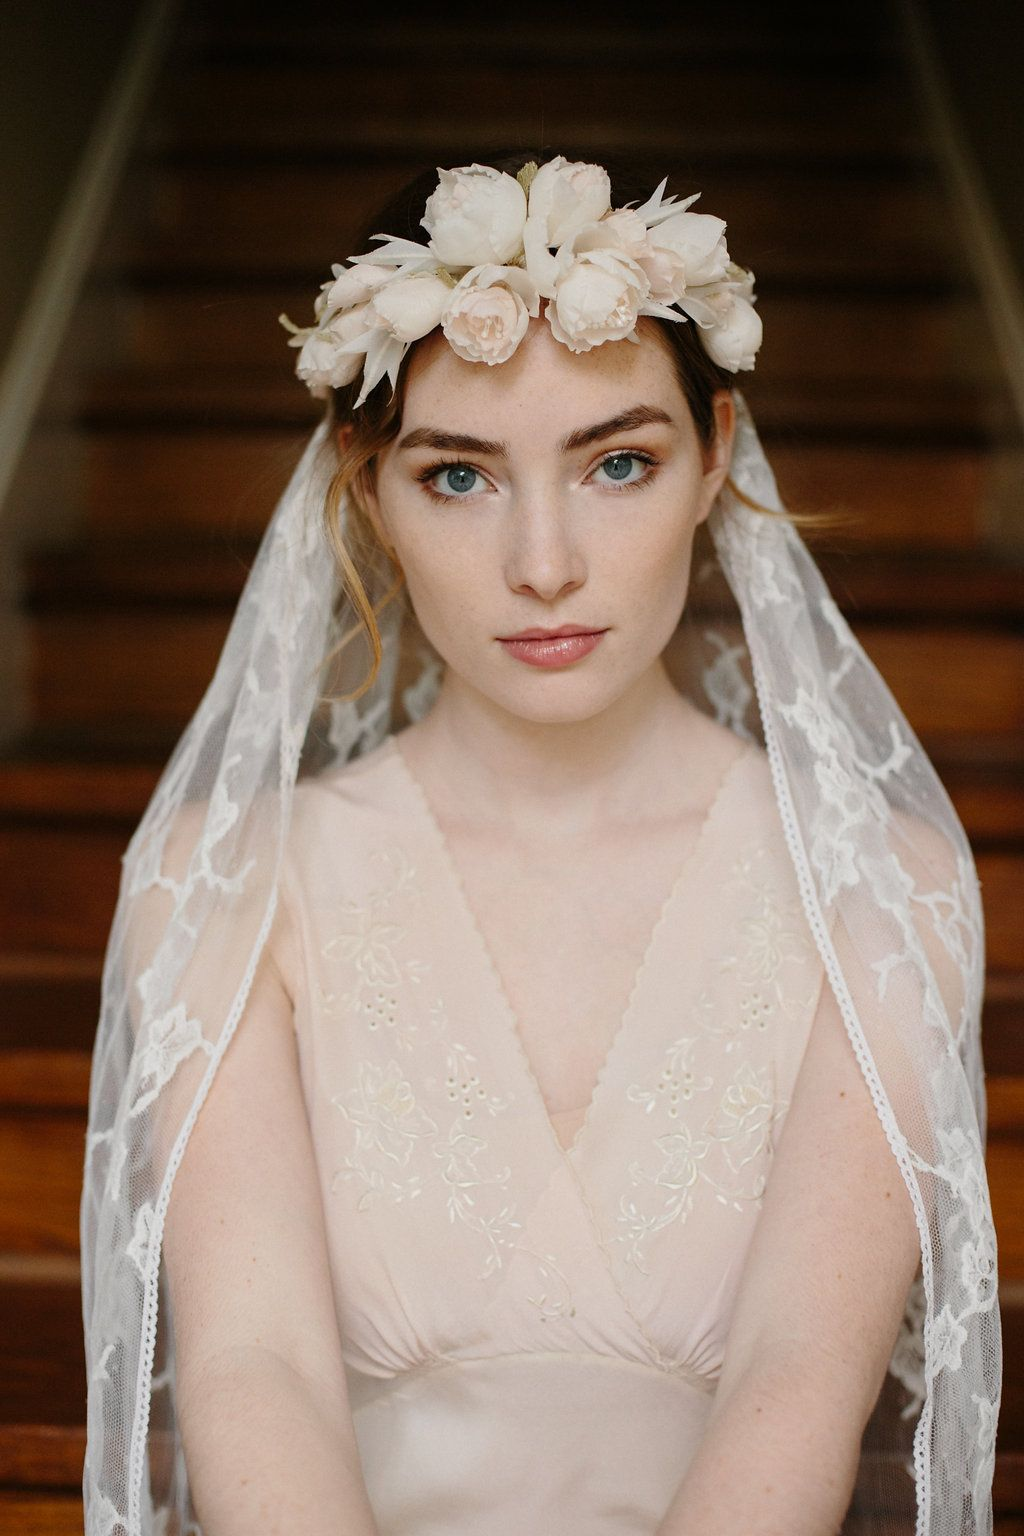 Heart soul flower crown and lace veil poeme pinterest lush silk roses make up this rich bouquet of floral splendor to crown the bridal tresses securing a luxurious leaf patterned french chantilly lace veil izmirmasajfo